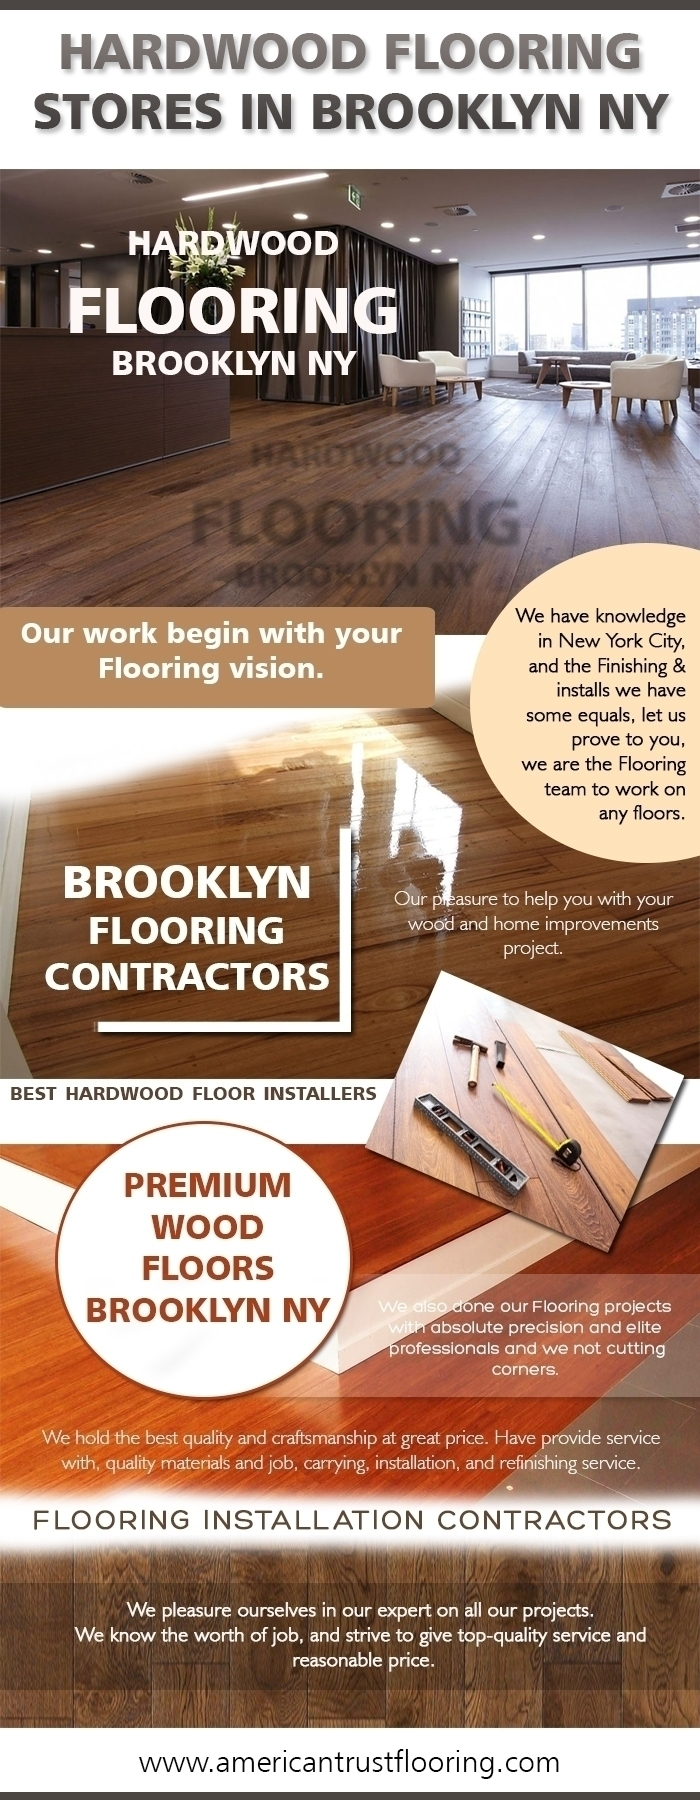 Website: subject hardwood floor - woodfloorsnyc | ello